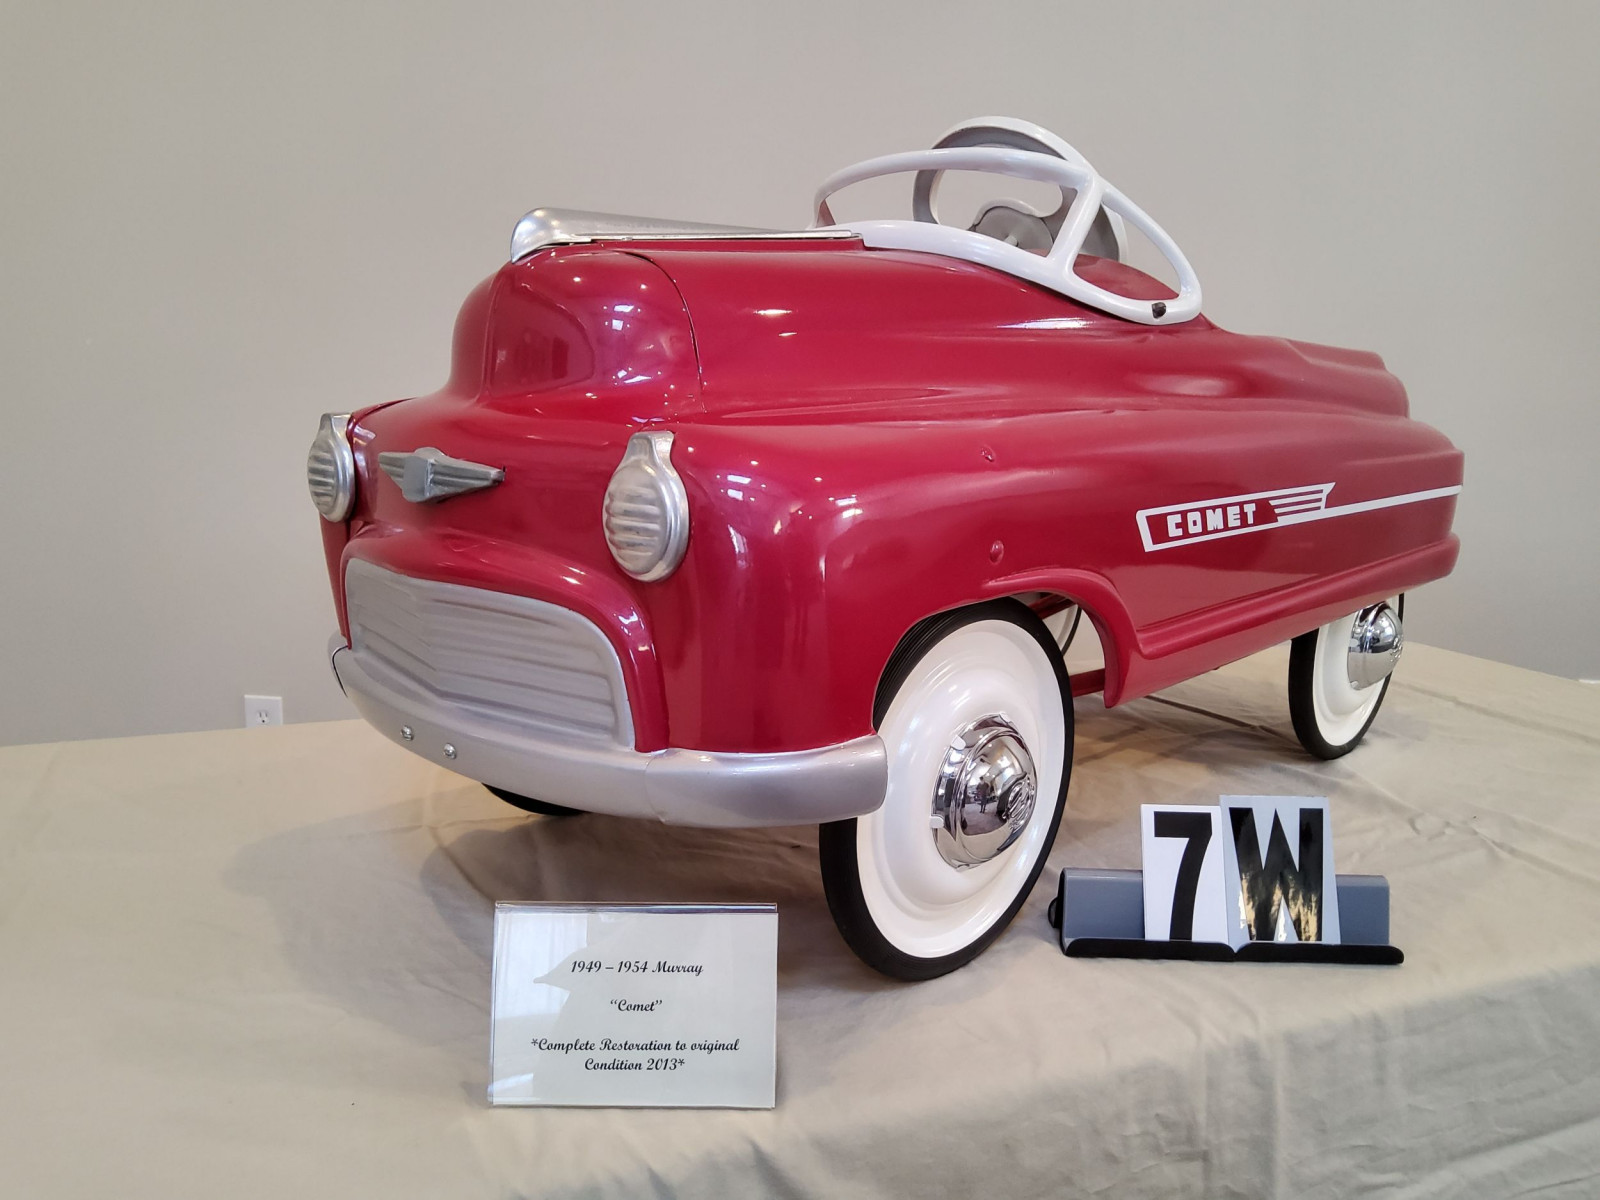 1949-54 Murray Comet Pedal Car - Image 2